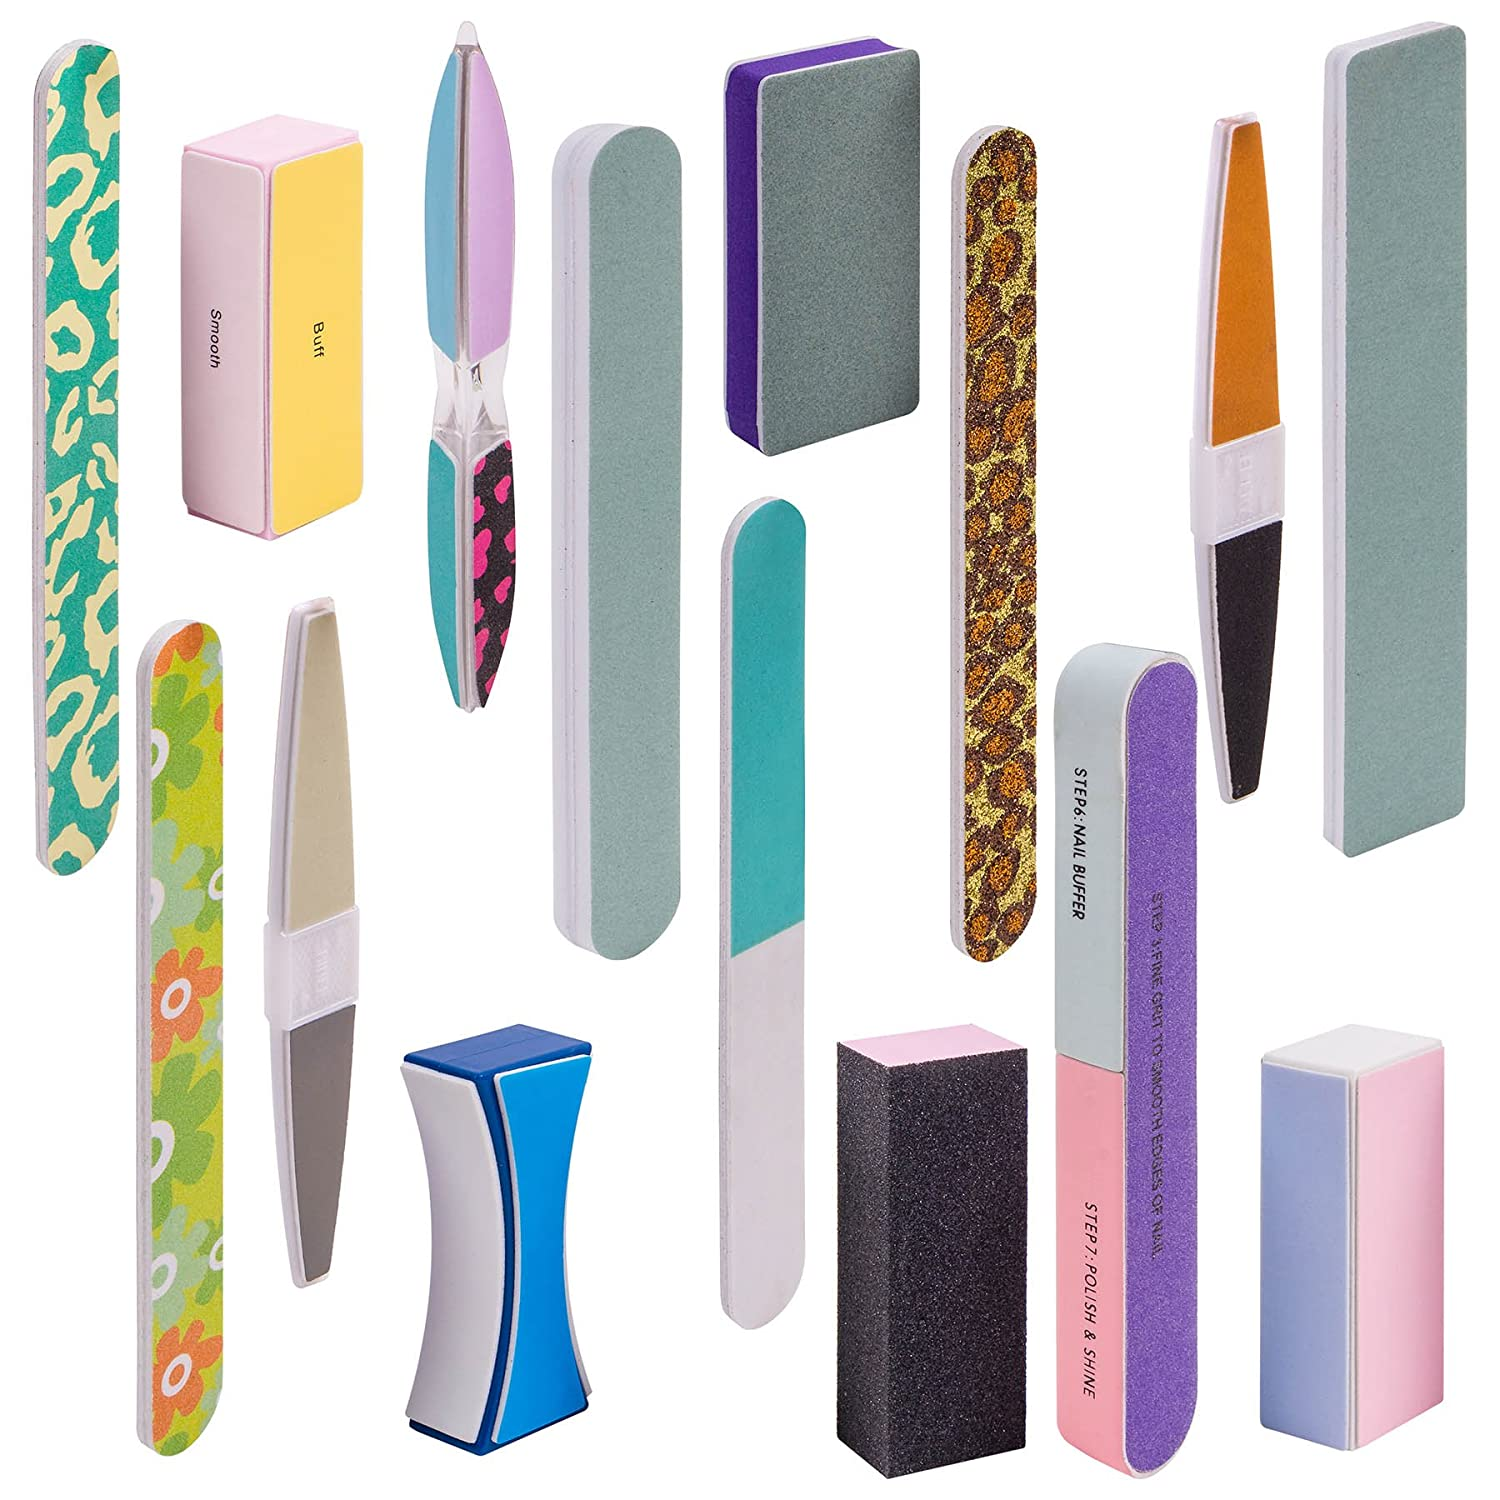 Shany Cosmetics Assorted Nail Buffer Files Blocks Cute Styles, 15 Count SH-NF-SET01